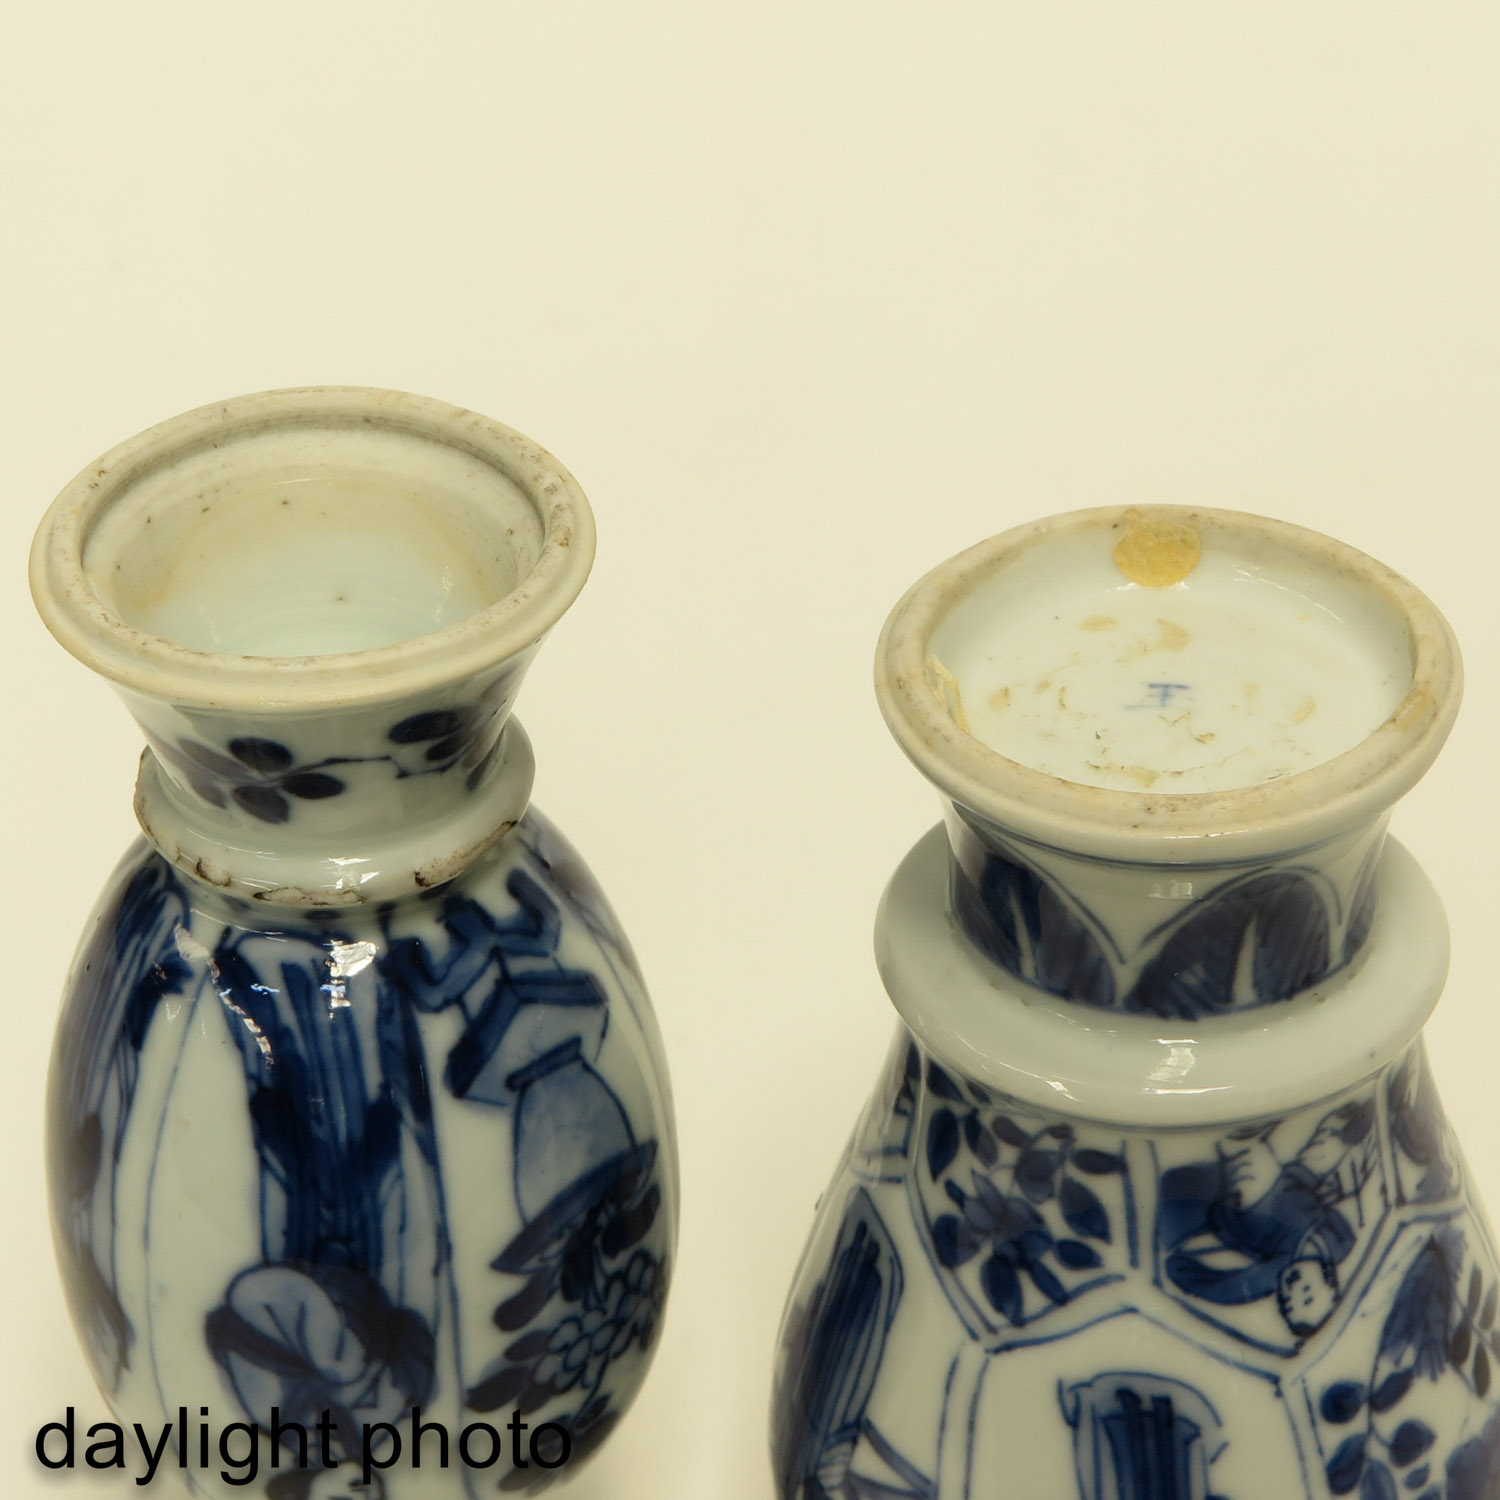 Lot 7068 - Two Miniature Blue and White Vases